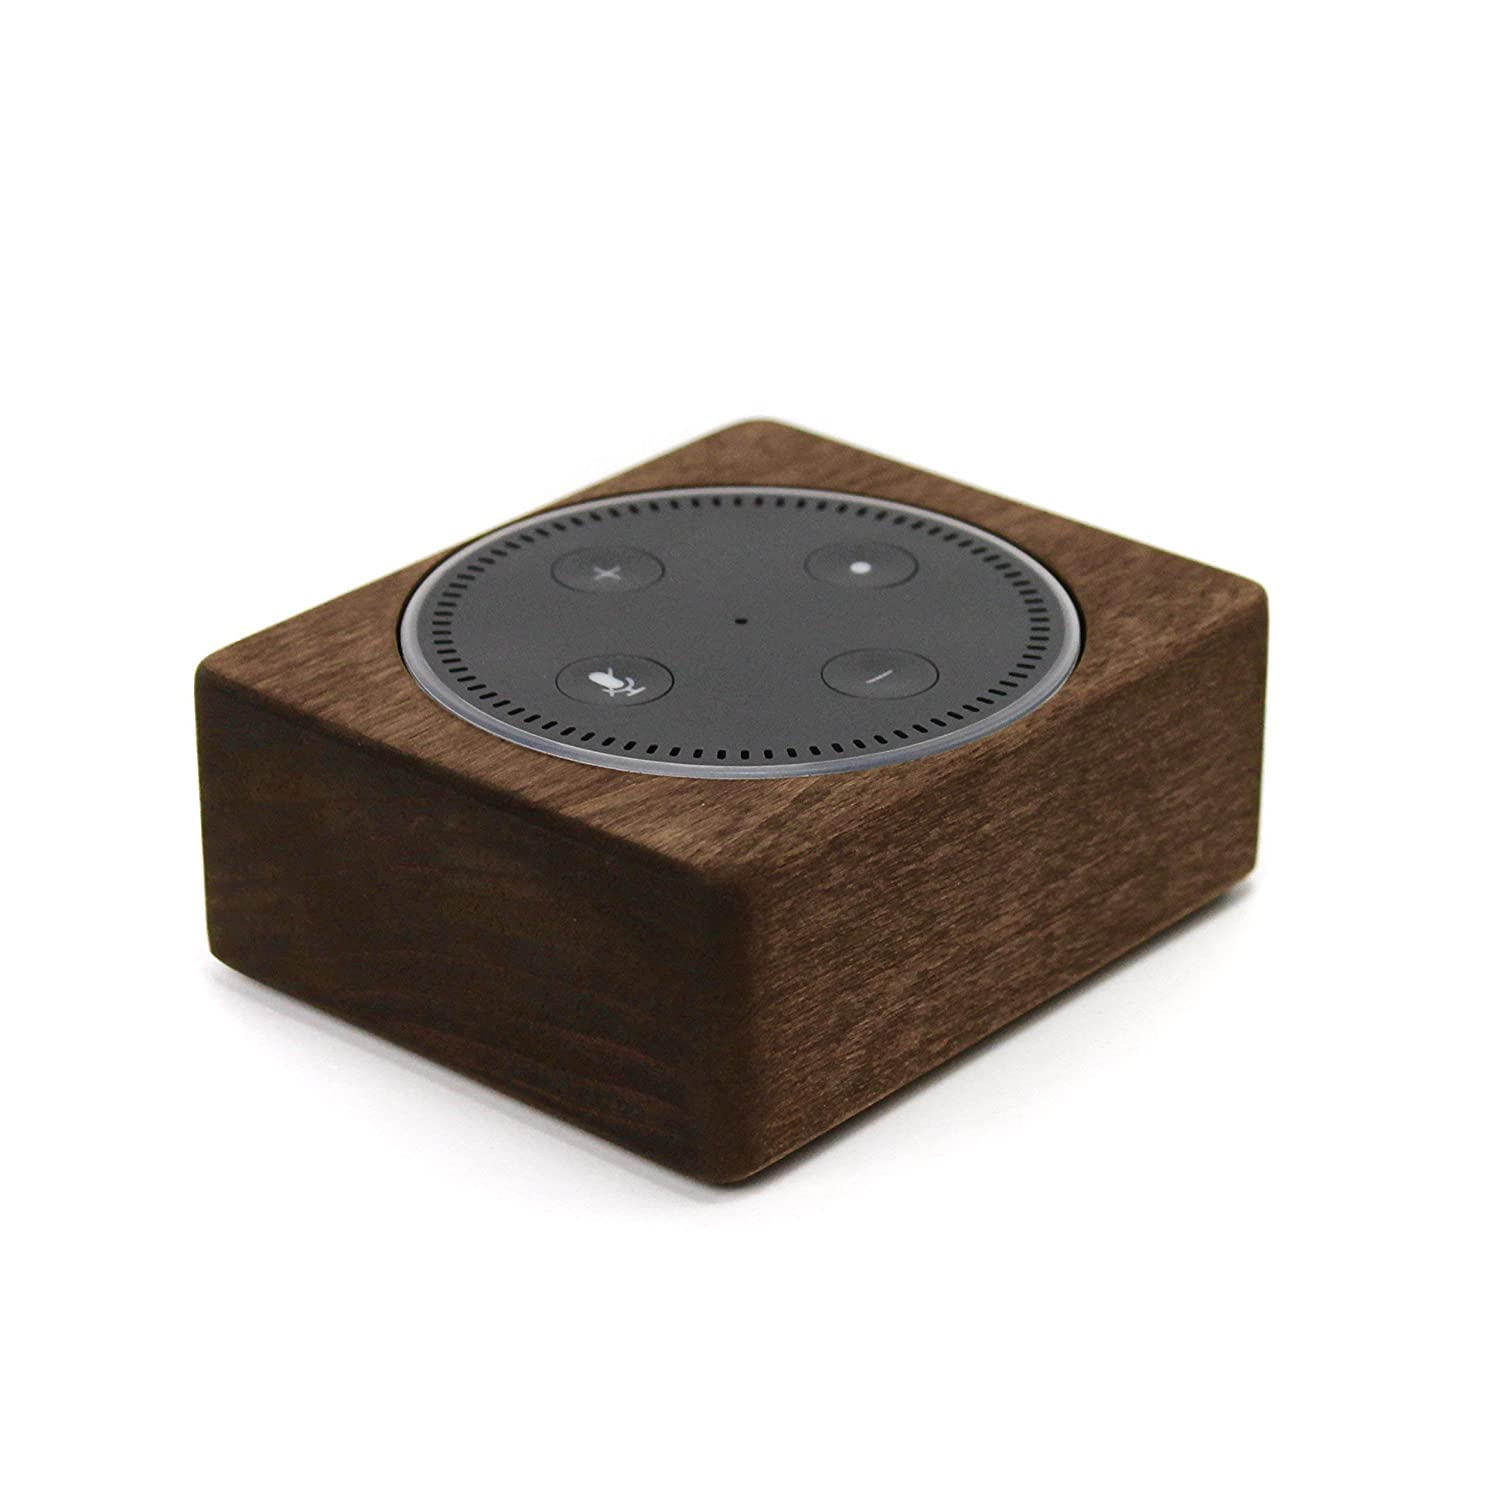 Echo Dot Wood Stand 2nd Gen, Handmade in USA, Solid Wood Holder, Rustic Hardwood Stand for Alexa, Decorative Protective Case Made from Alder Wood Espresso Color